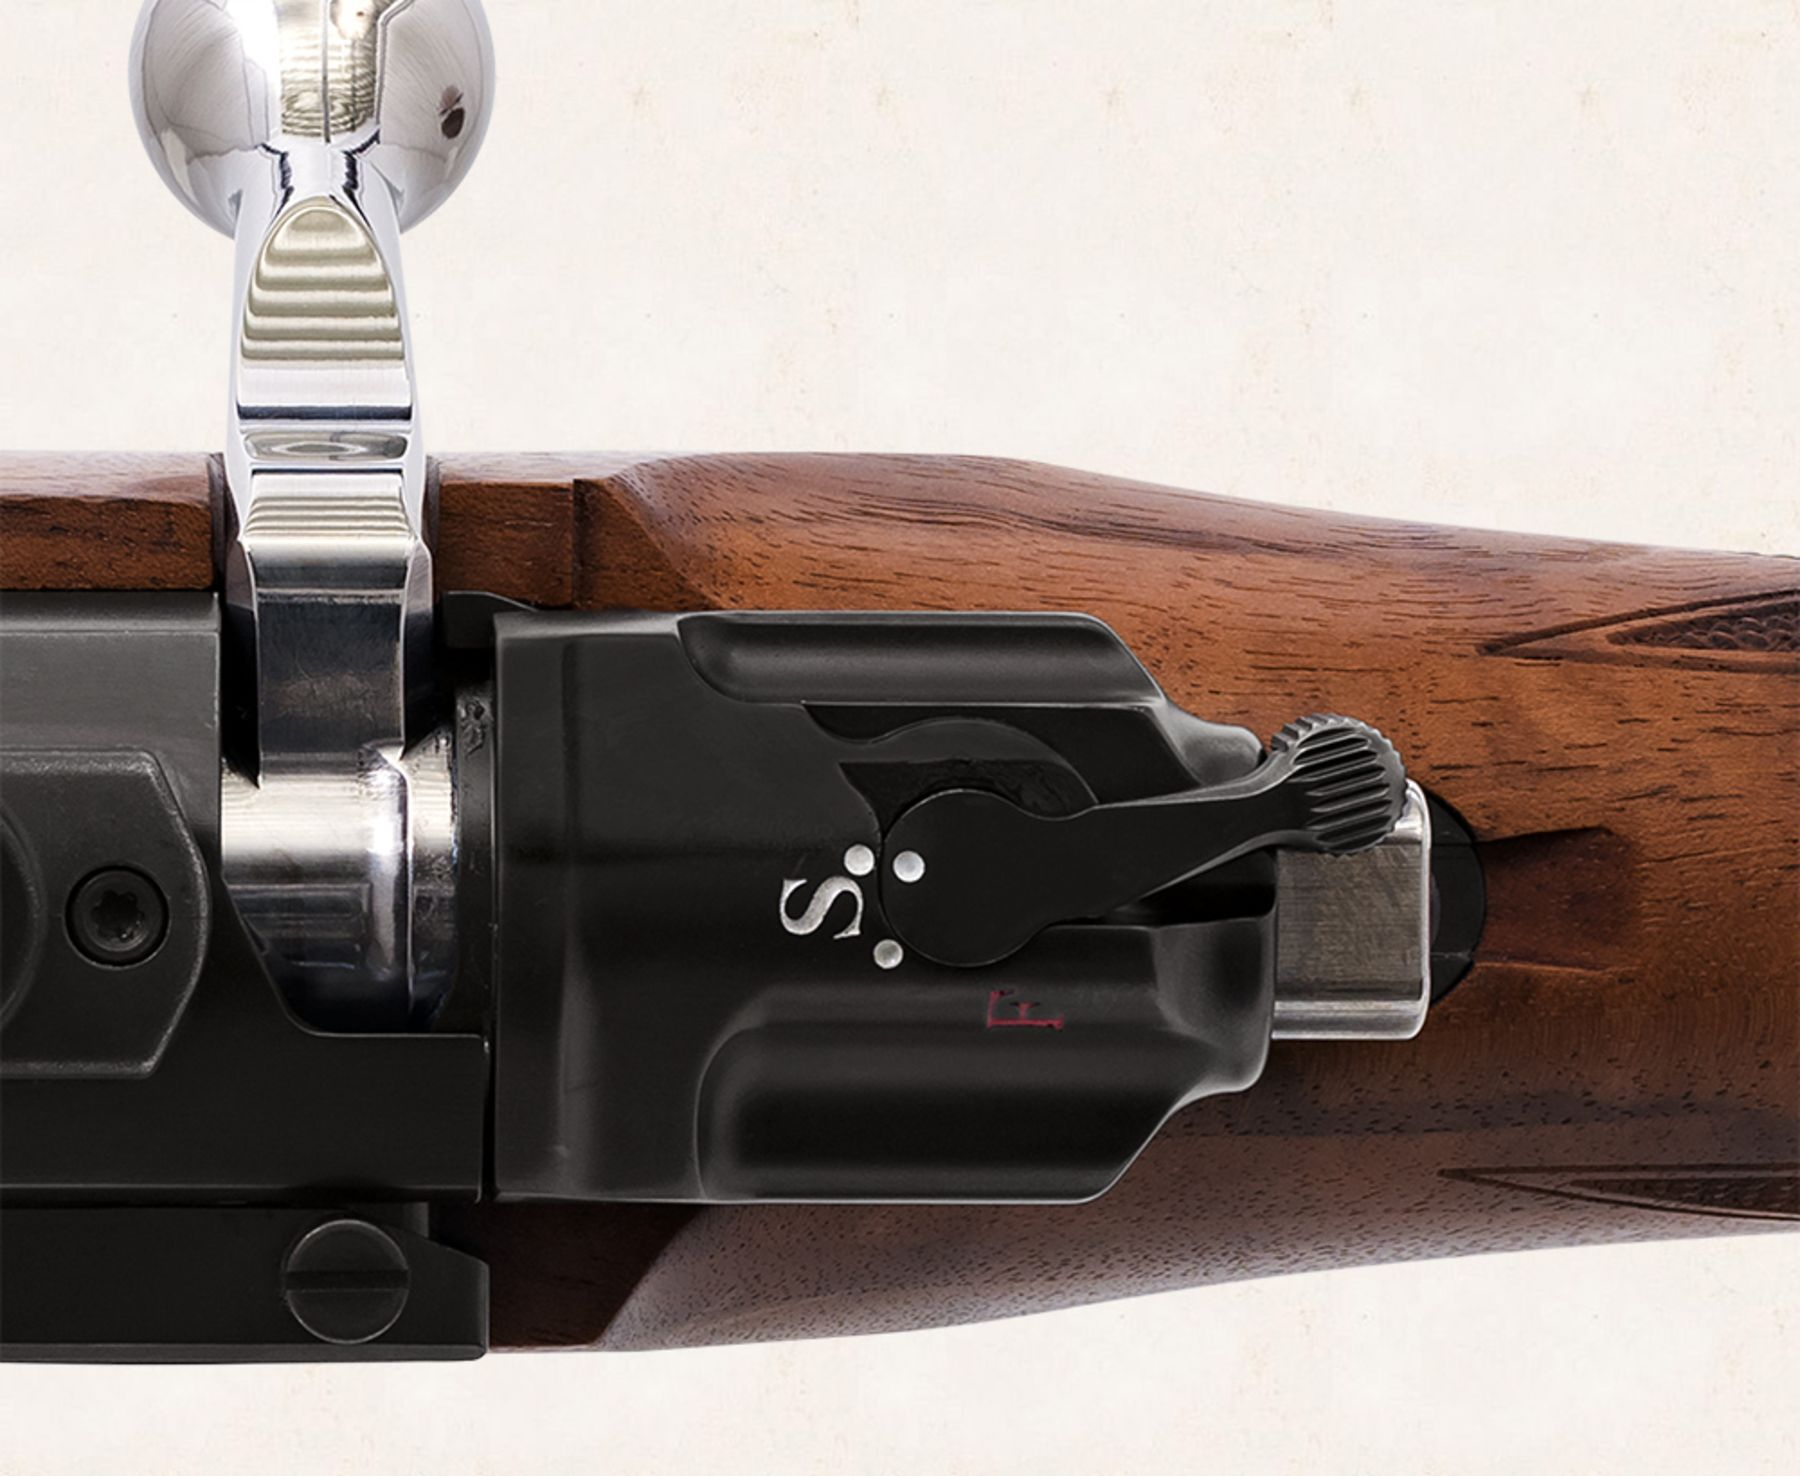 Mauser M98 Winchester Model 70 safety catch